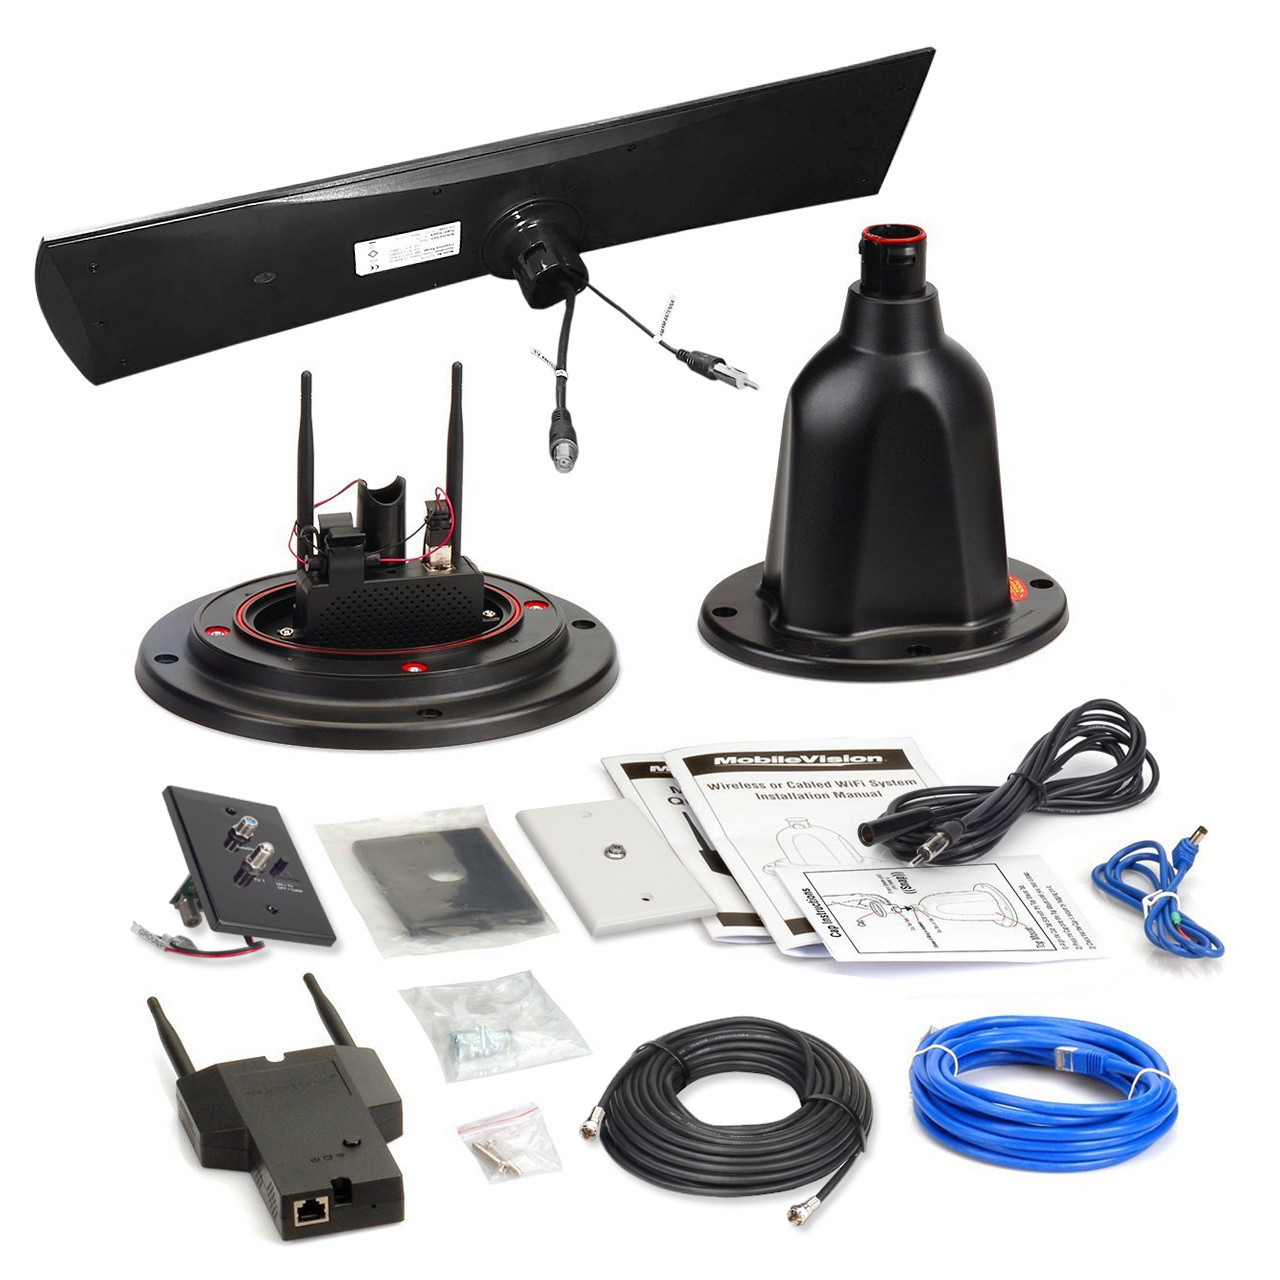 RV-LINK RV-WIFITVB-W All-in-One WIFI/TV/FM/AM Internet Extender ANTENNA for  Recreational Vehicles